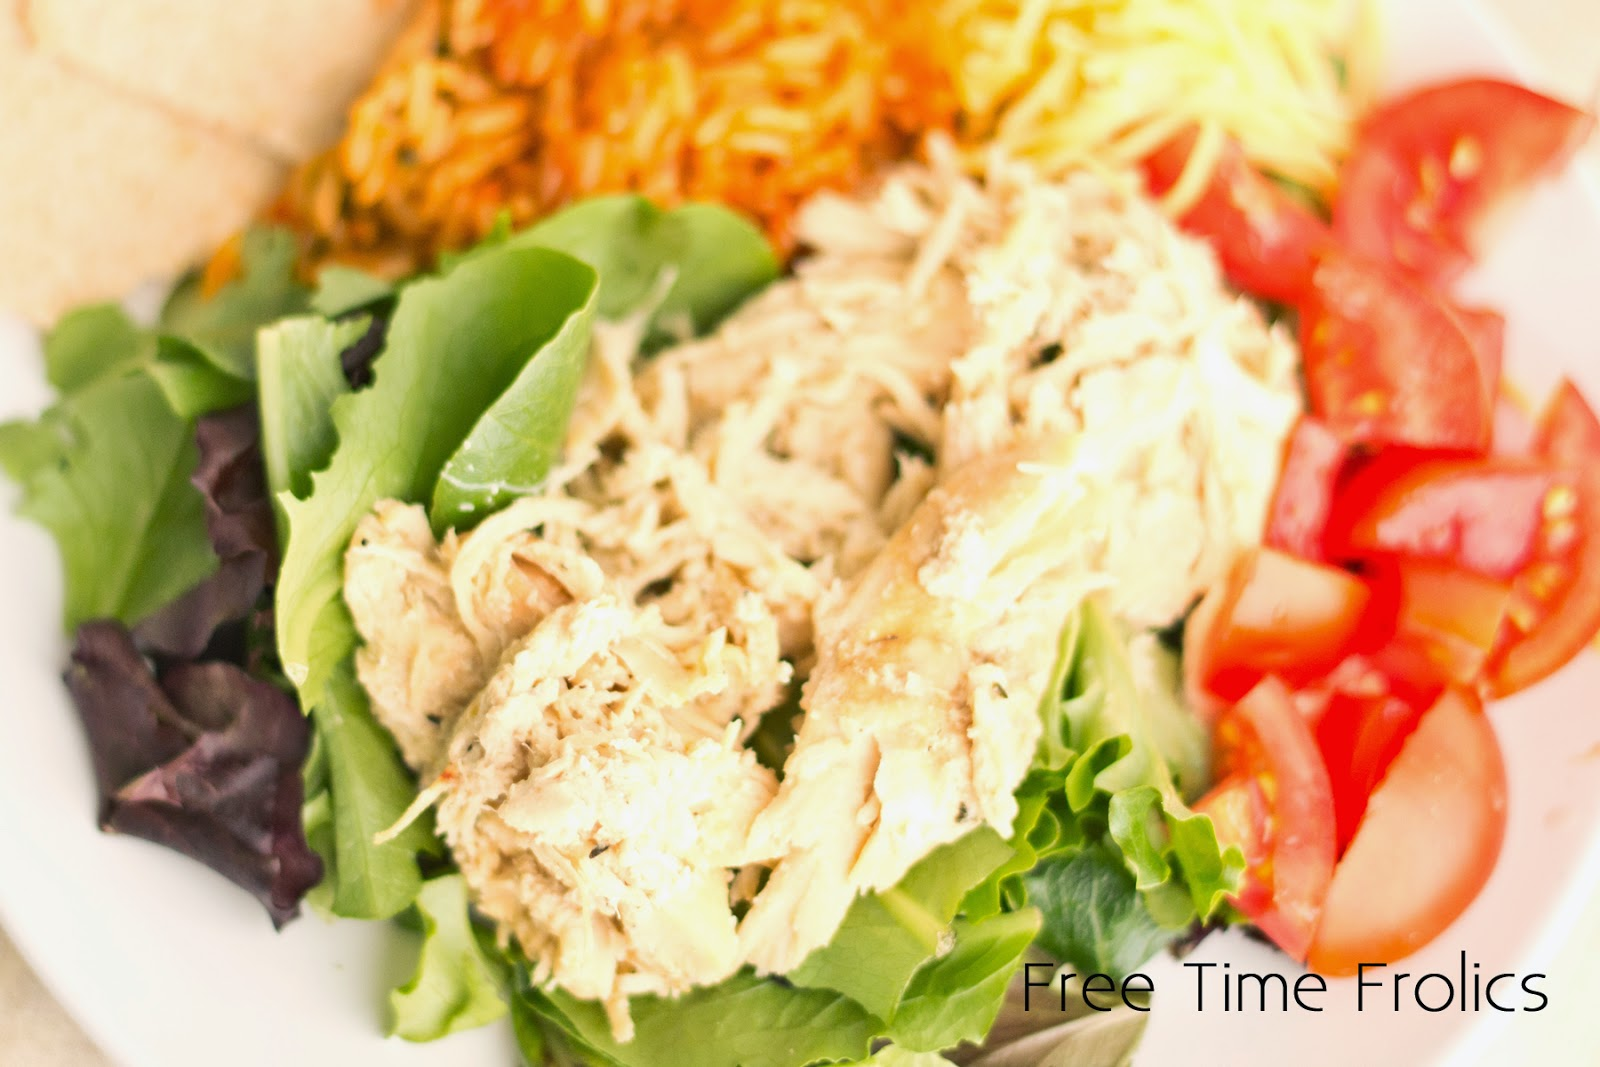 Crockpot Rotisserie Chicken Recipe www.freetimefrolics.com salad